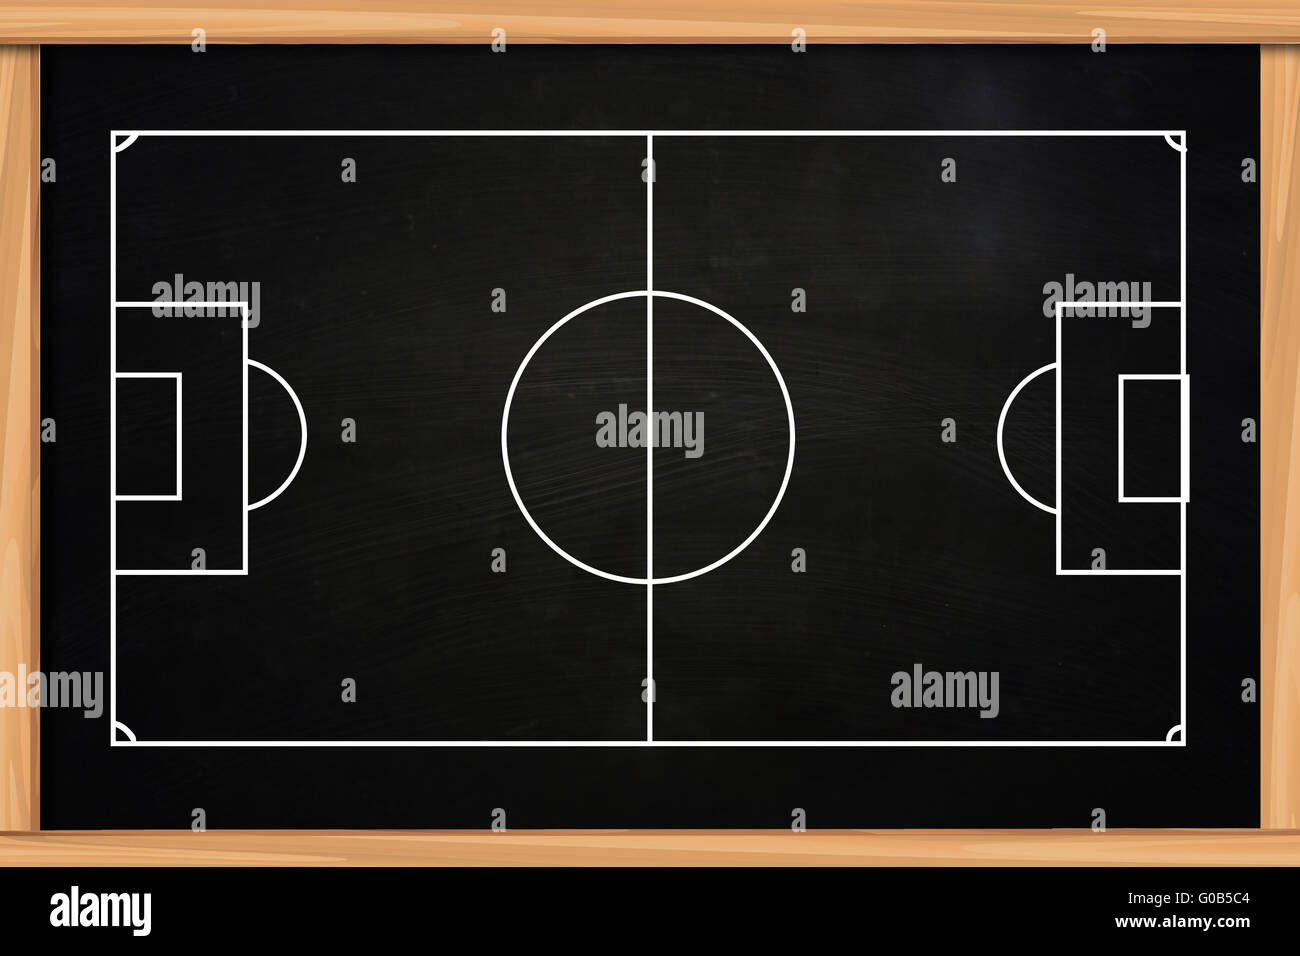 Chalk Board Drawing Of Empty Soccer Or Football Game Strategy Stock